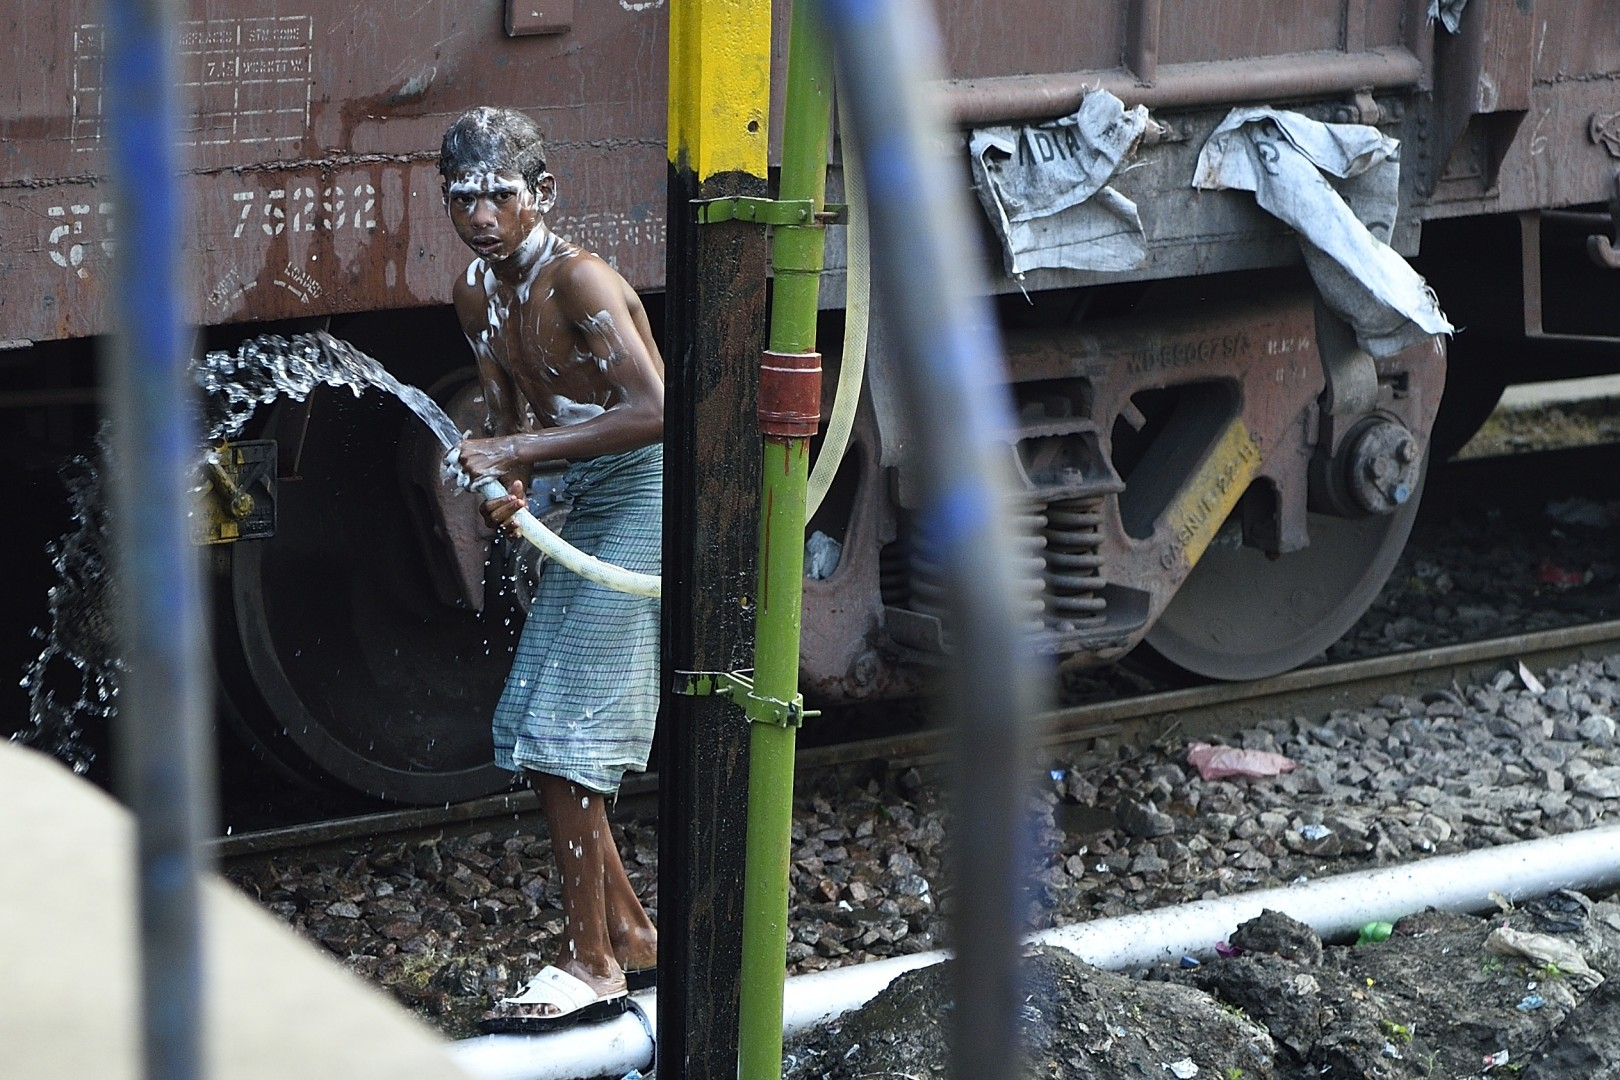 living india: take a shower at the railway station